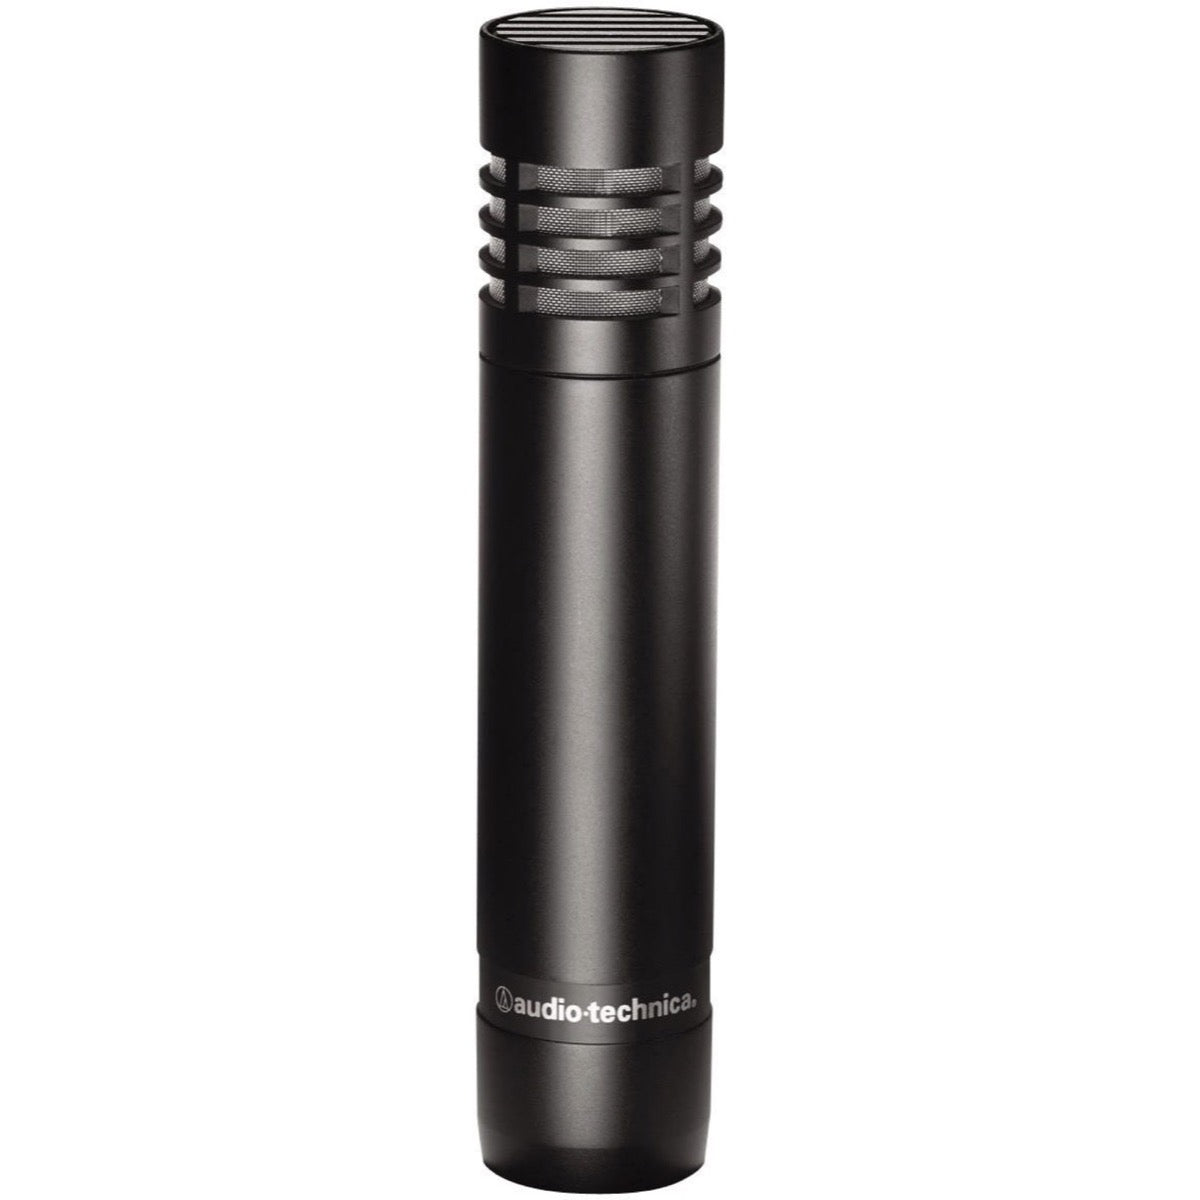 Audio-Technica AT2021 Small-Diaphragm Condenser Microphone